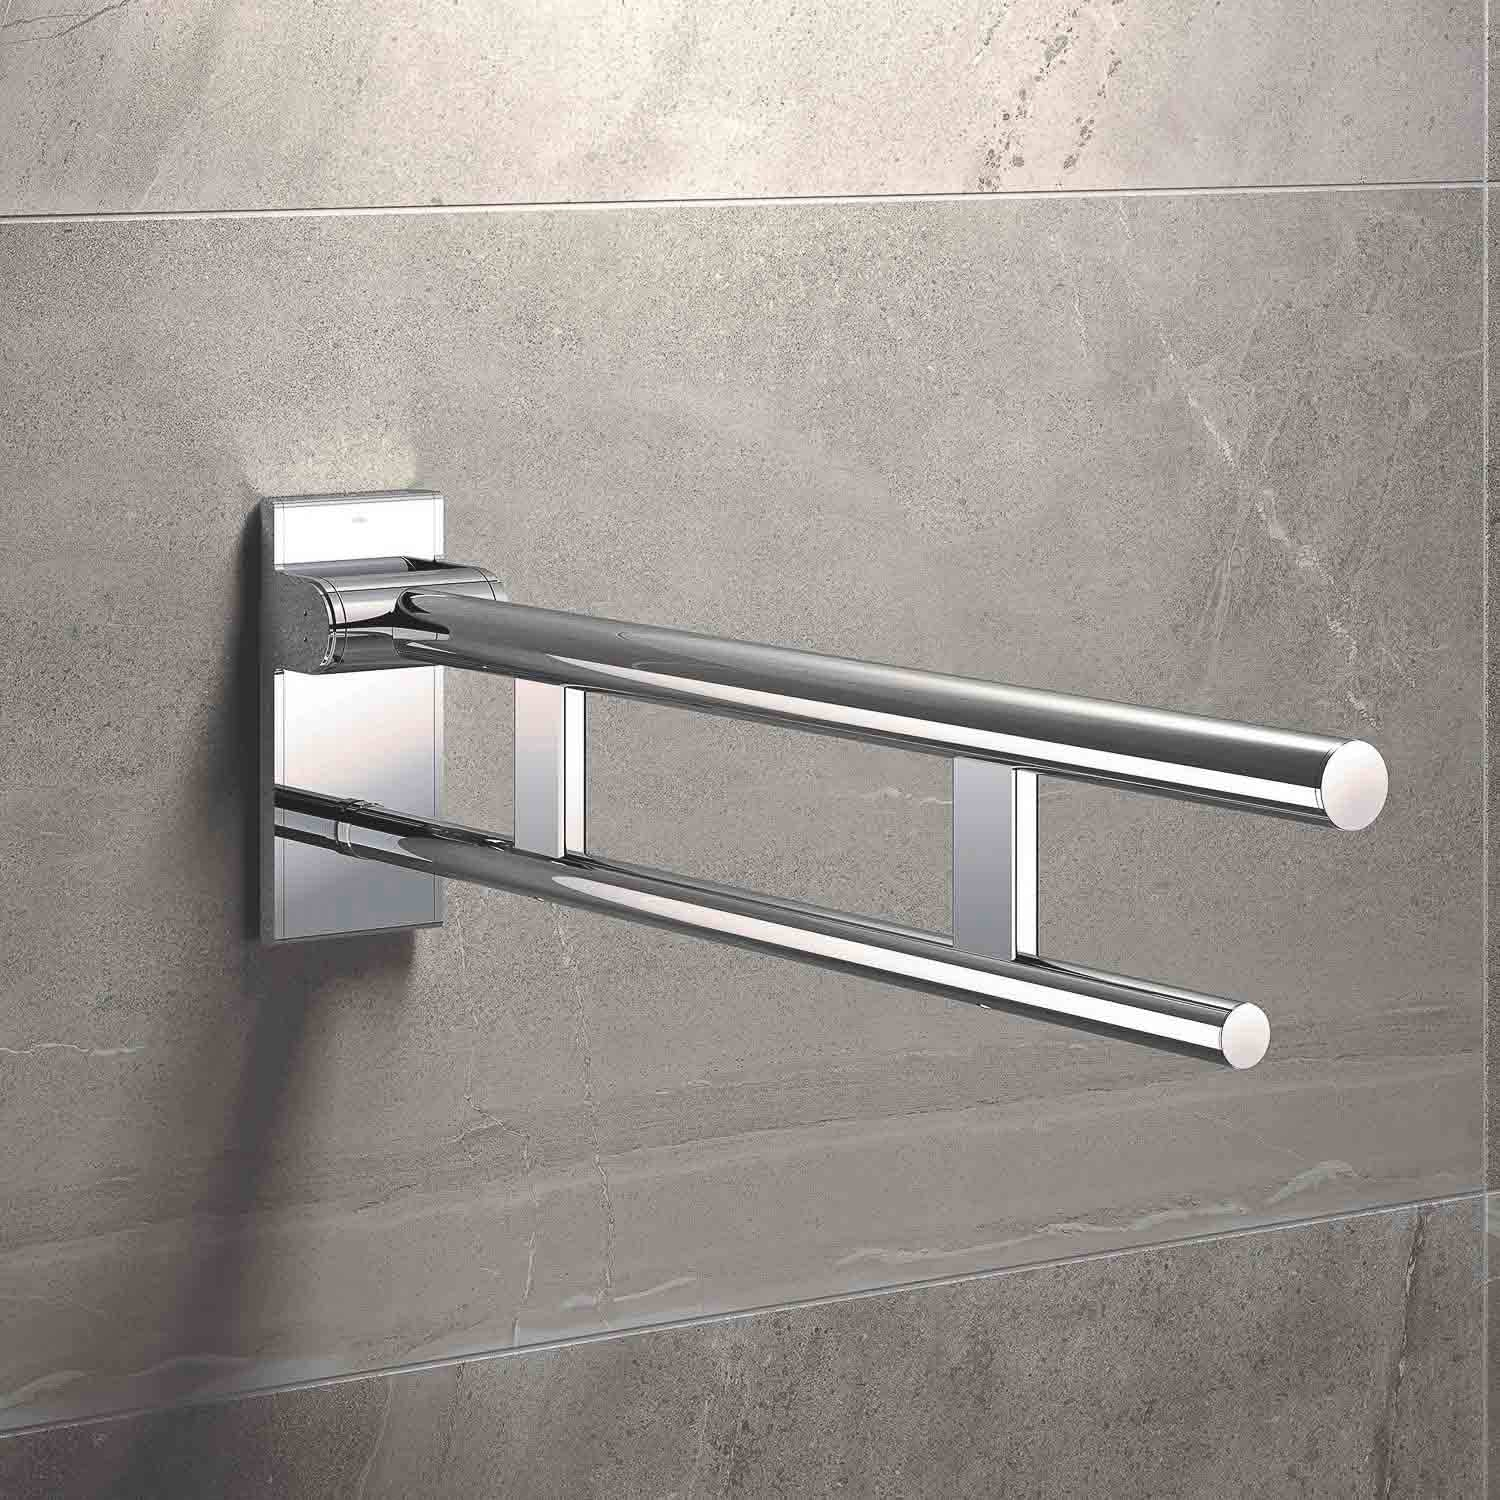 850mm Freestyle Hinged Grab Rail with a chrome finish lifestyle image